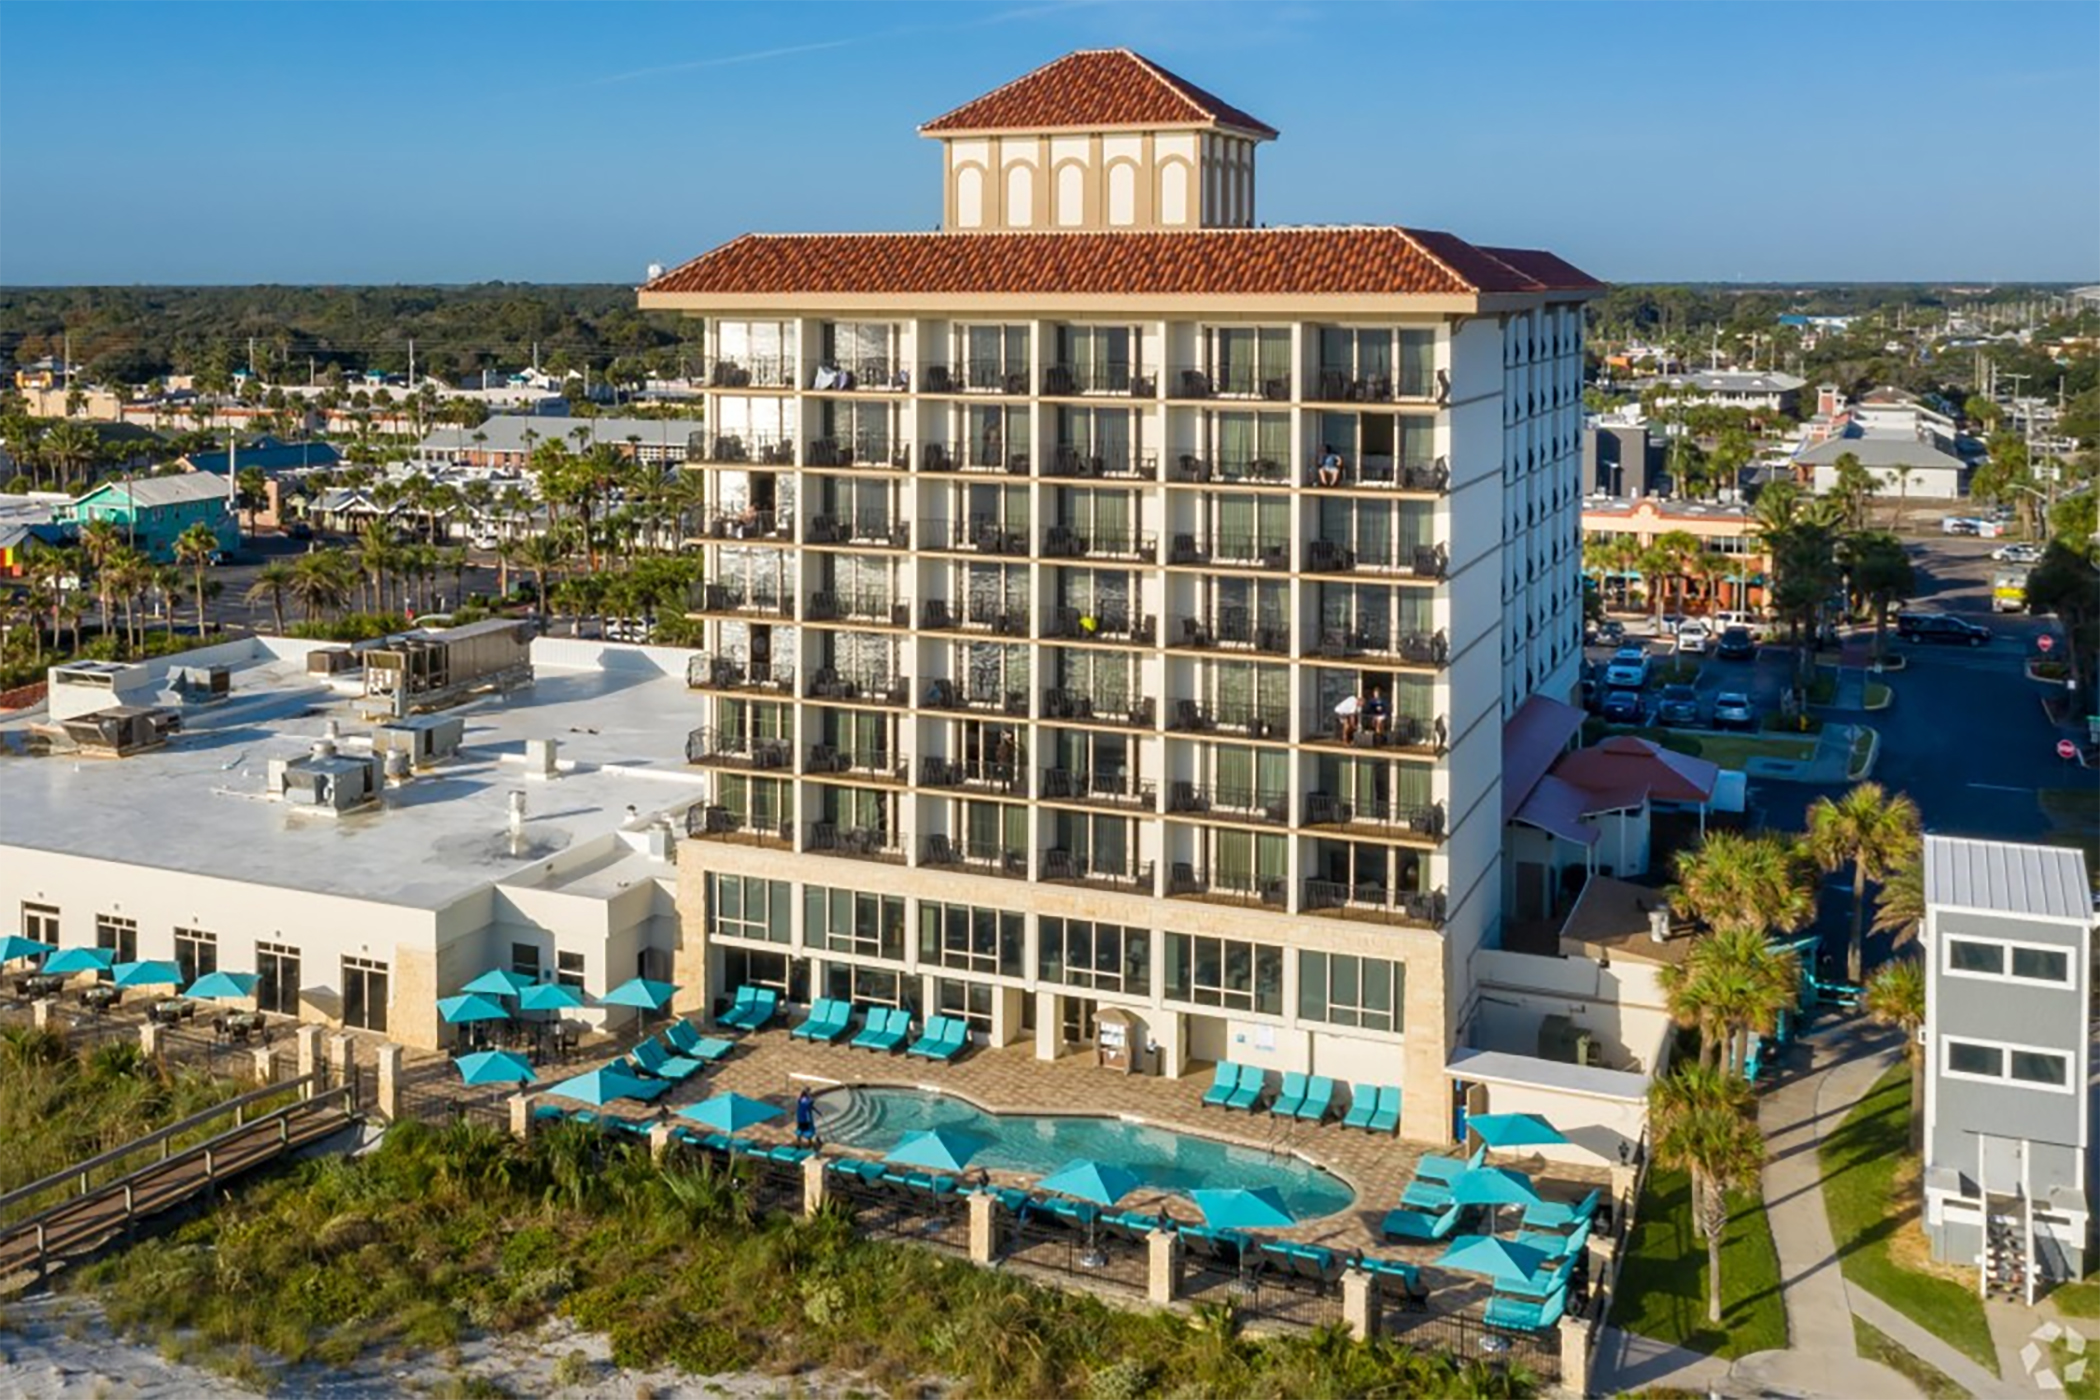 One Ocean Resort, an eight-story, 193-room hotel along the Atlantic Ocean in Jacksonville, Florida, is completely booked for Memorial Day weekend. (CoStar)